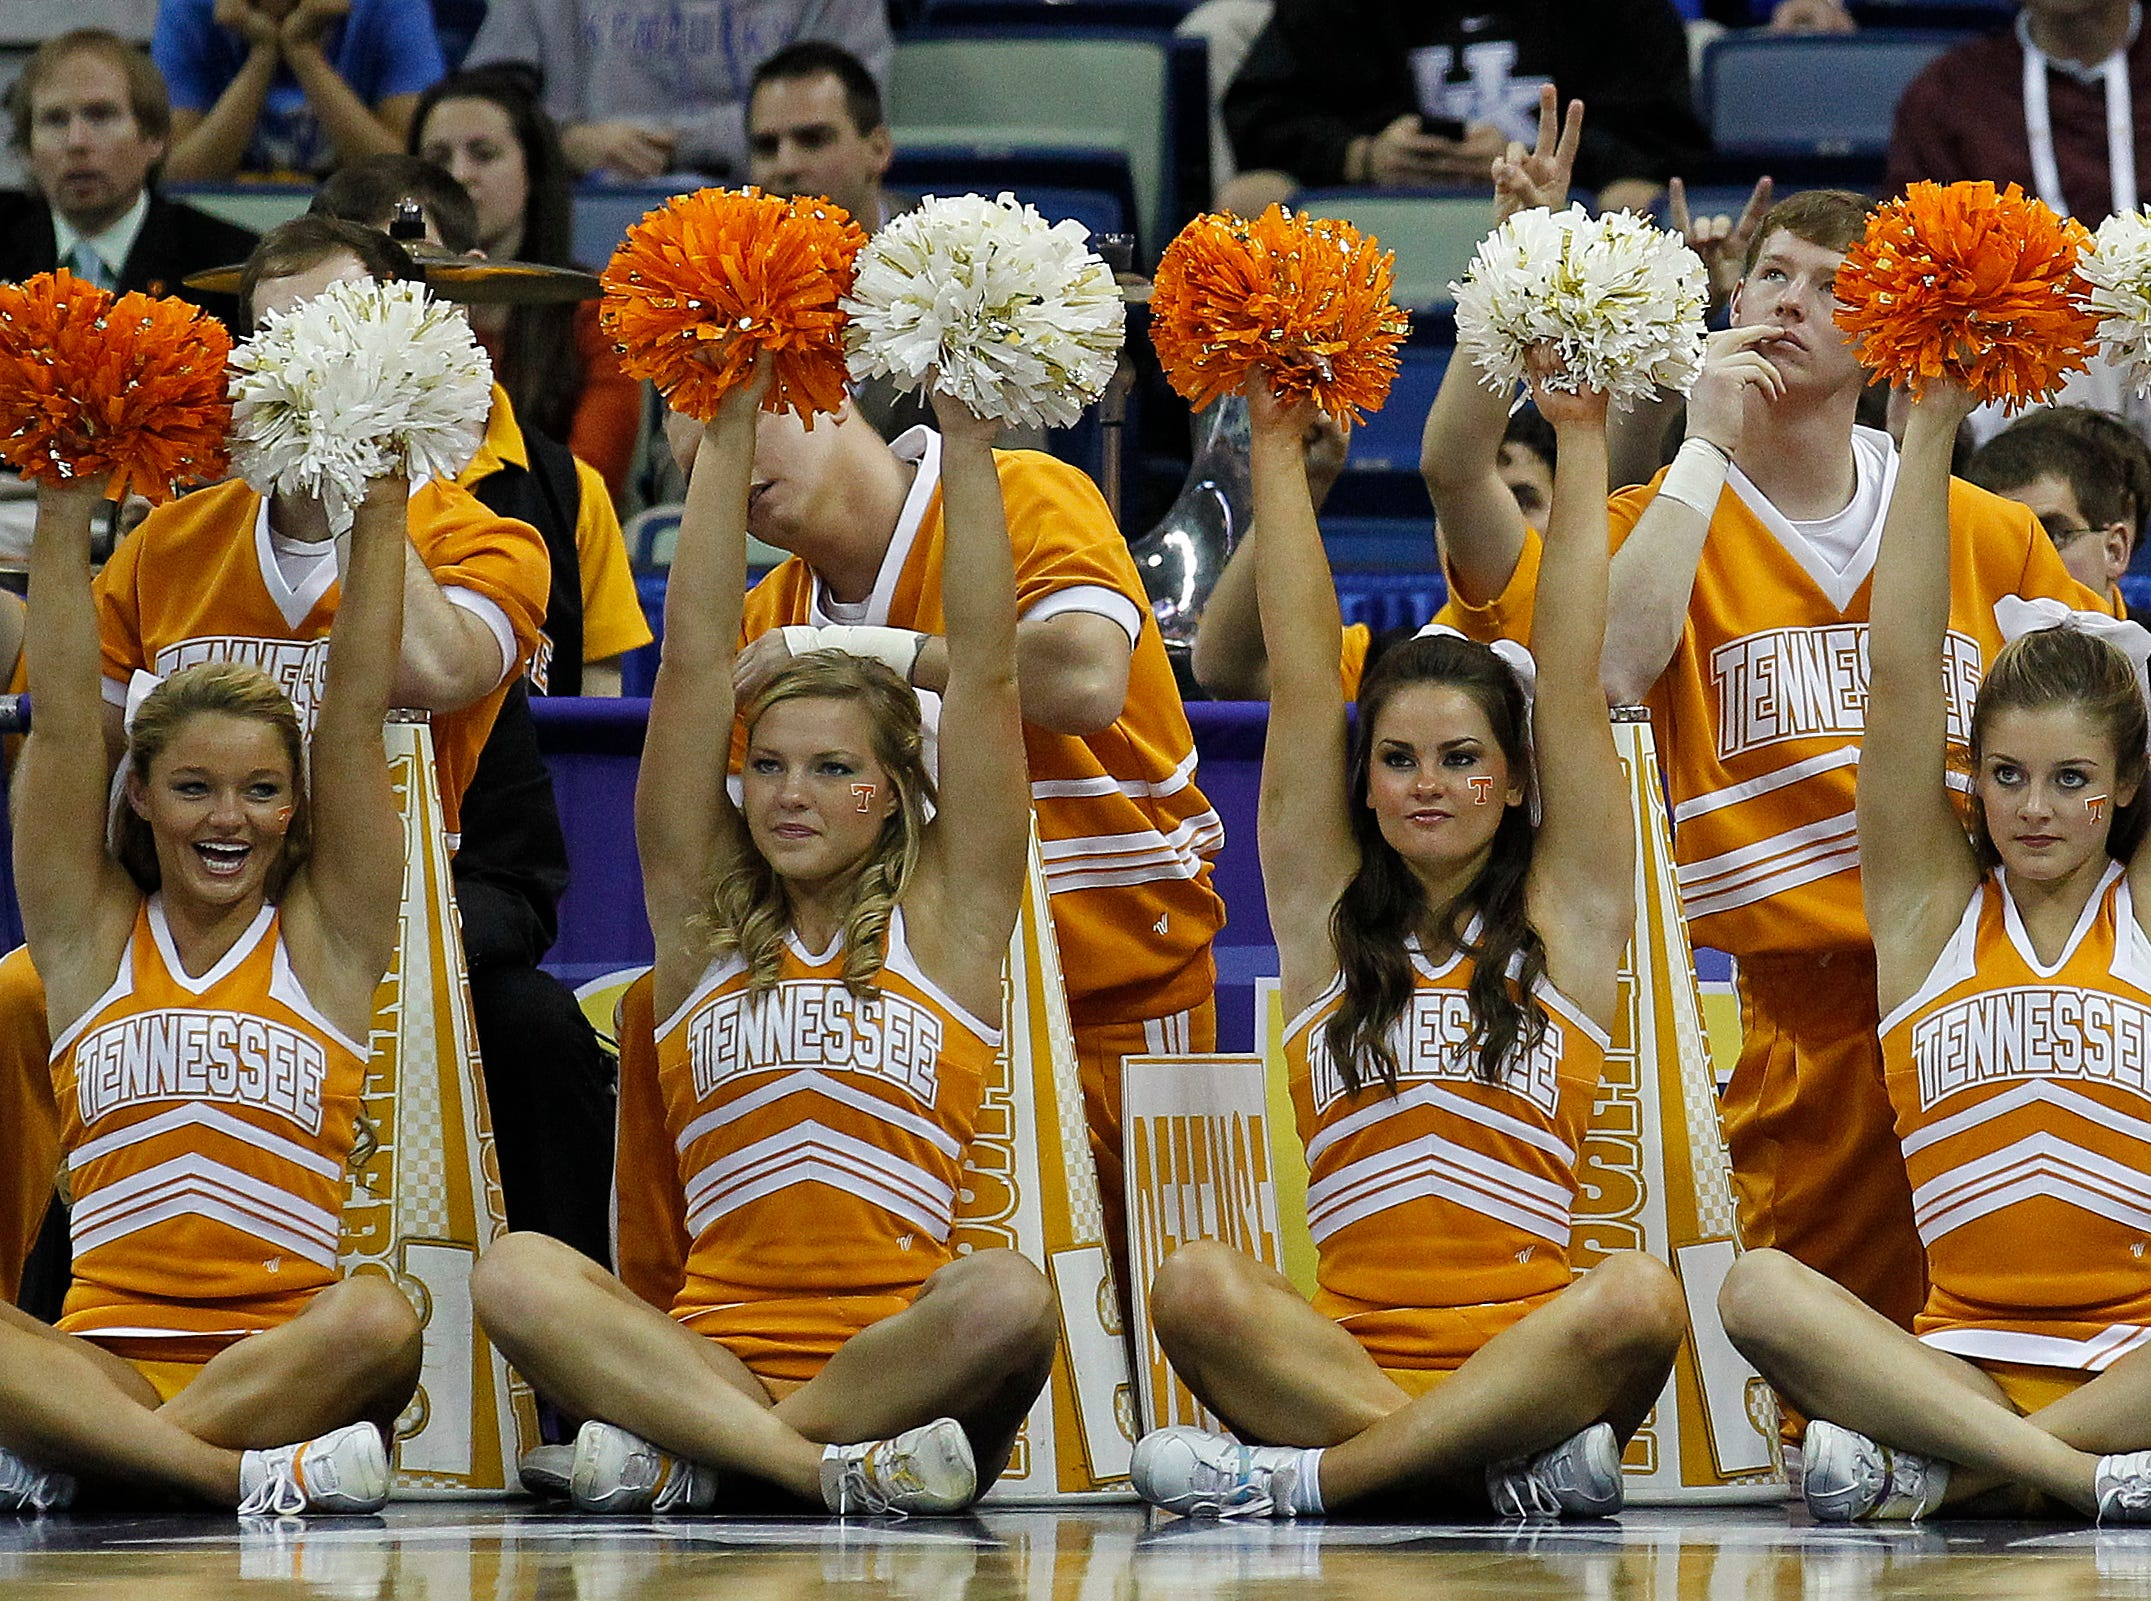 Tennessee cheerleaders are pictured during the second half of an NCAA college basketball game against Mississippi in the second round of the 2012 Southeastern Conference tournament at the New Orleans Arena in New Orleans, Friday, March 9, 2012. (AP Photo/Bill Haber)